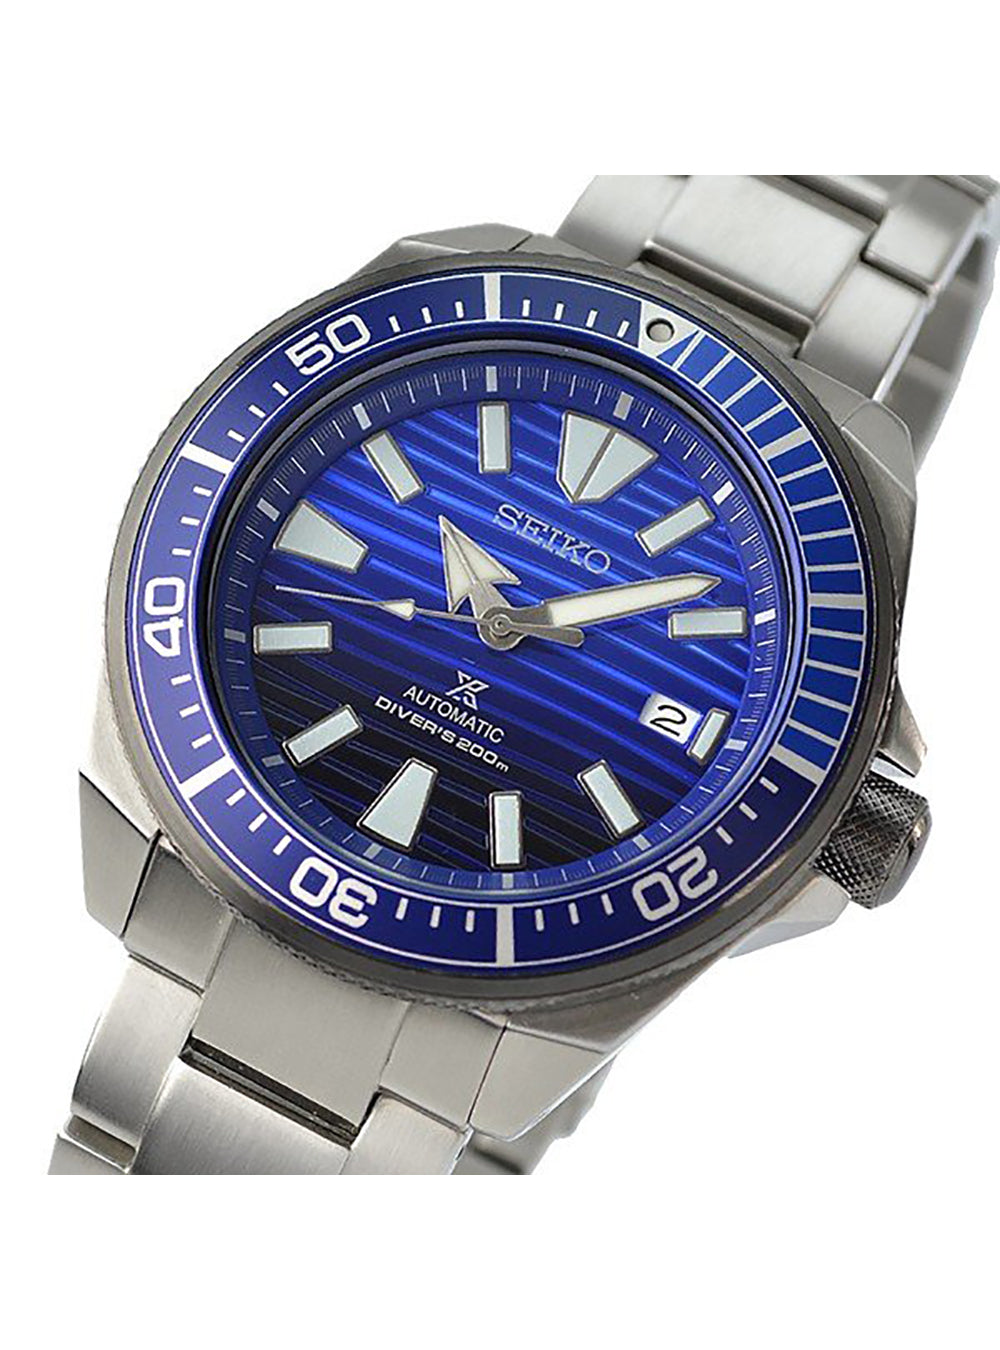 SEIKO PROSPEX SAVE THE OCEAN SPECIAL EDITION SAMURAI SBDY019 MADE IN JAPAN JDM